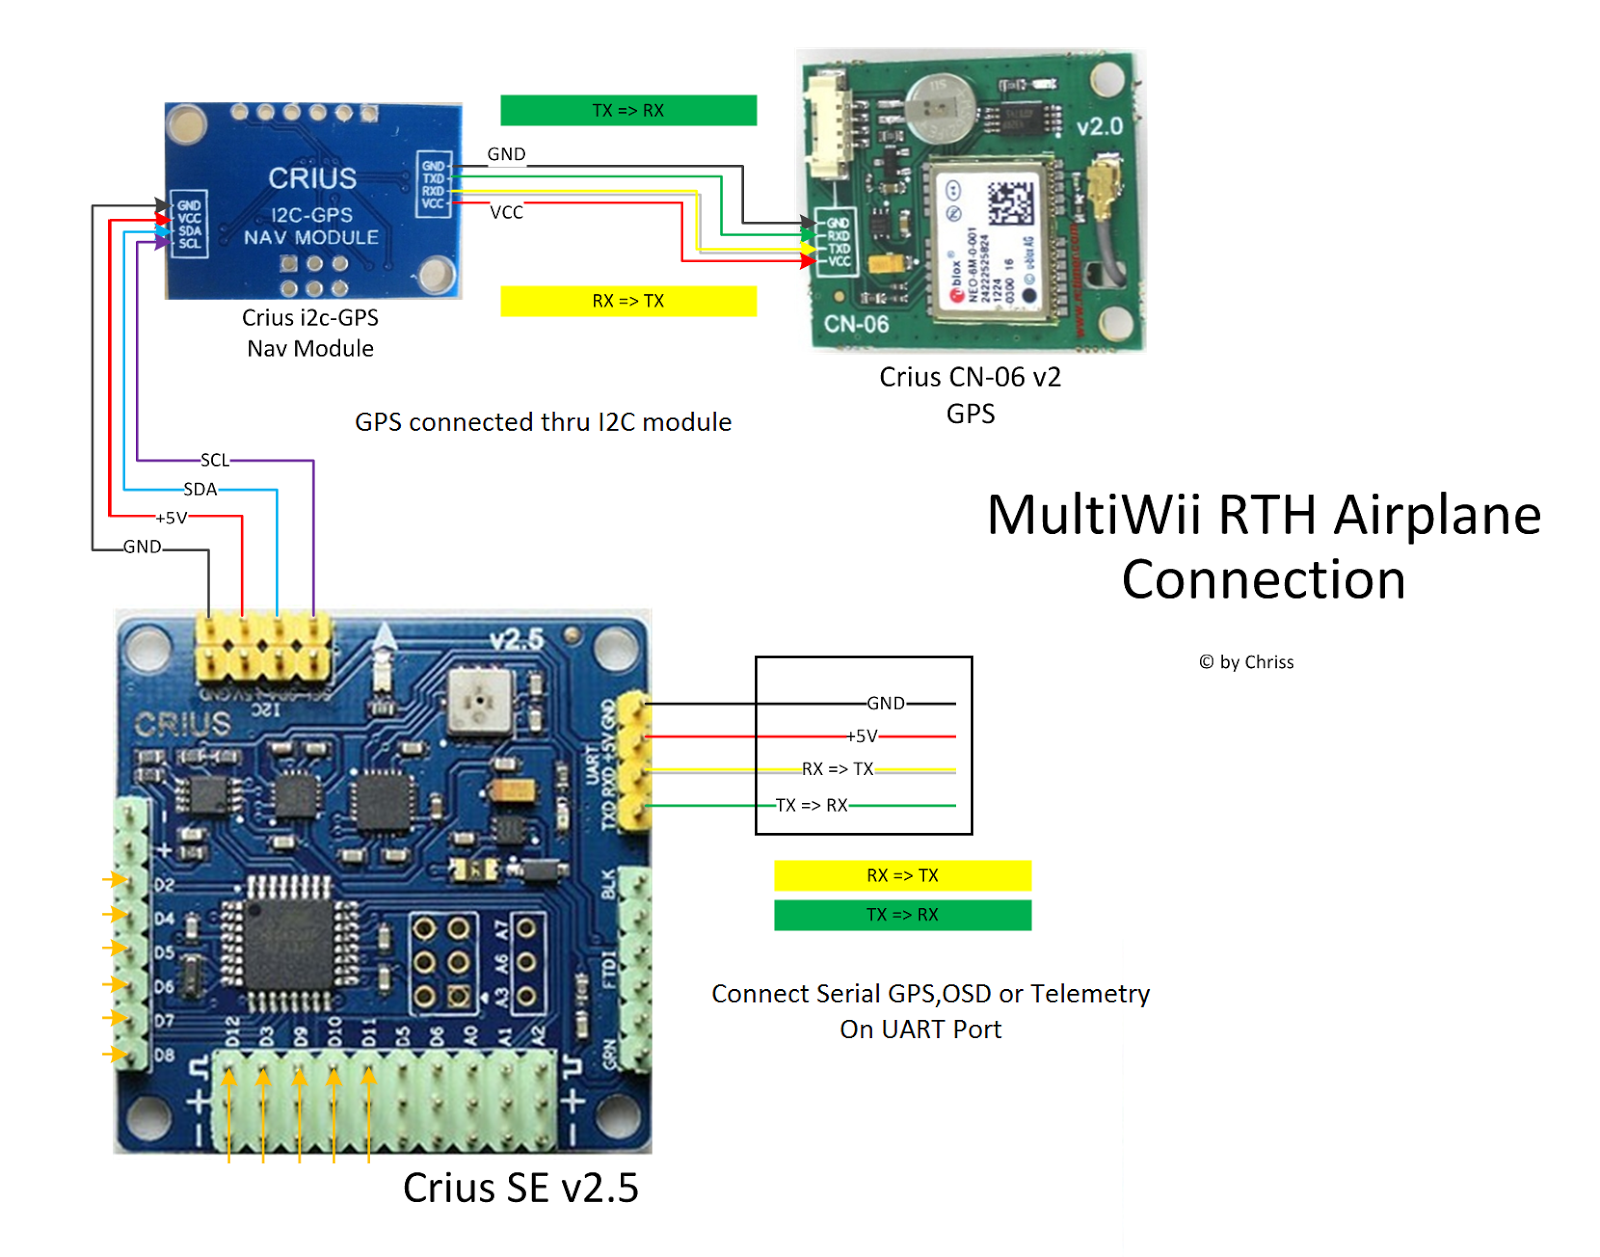 Quadcopter Wiring Diagram Multiwii 328p Control Area Work Can Likewise Minimosd Flight Controller All